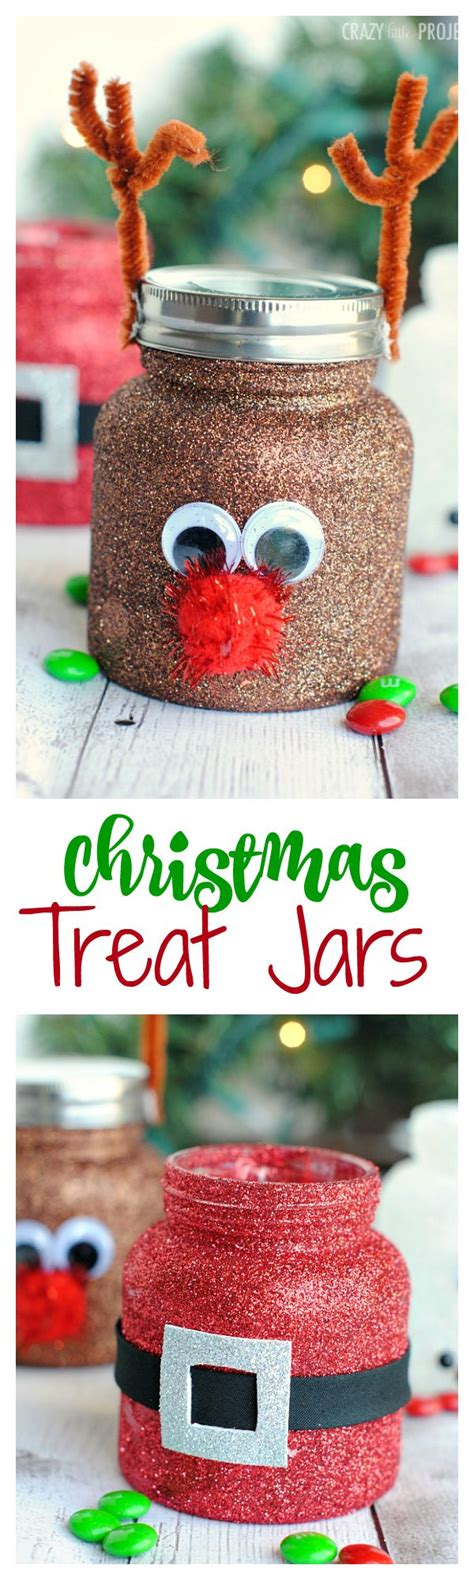 crafts for small children 1000 ideas about gifts on